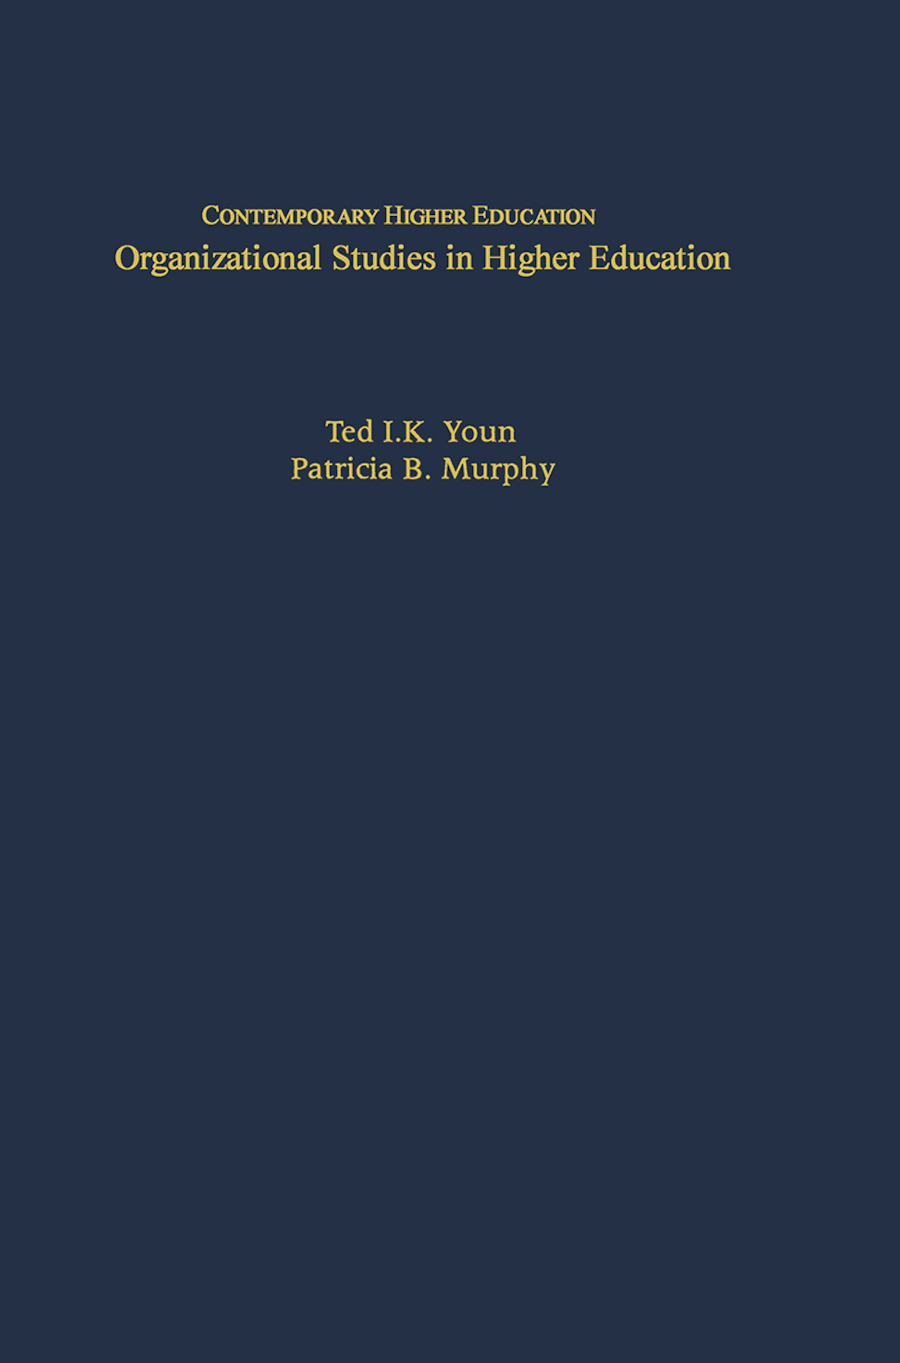 Organizational Studies in Higher Education book cover